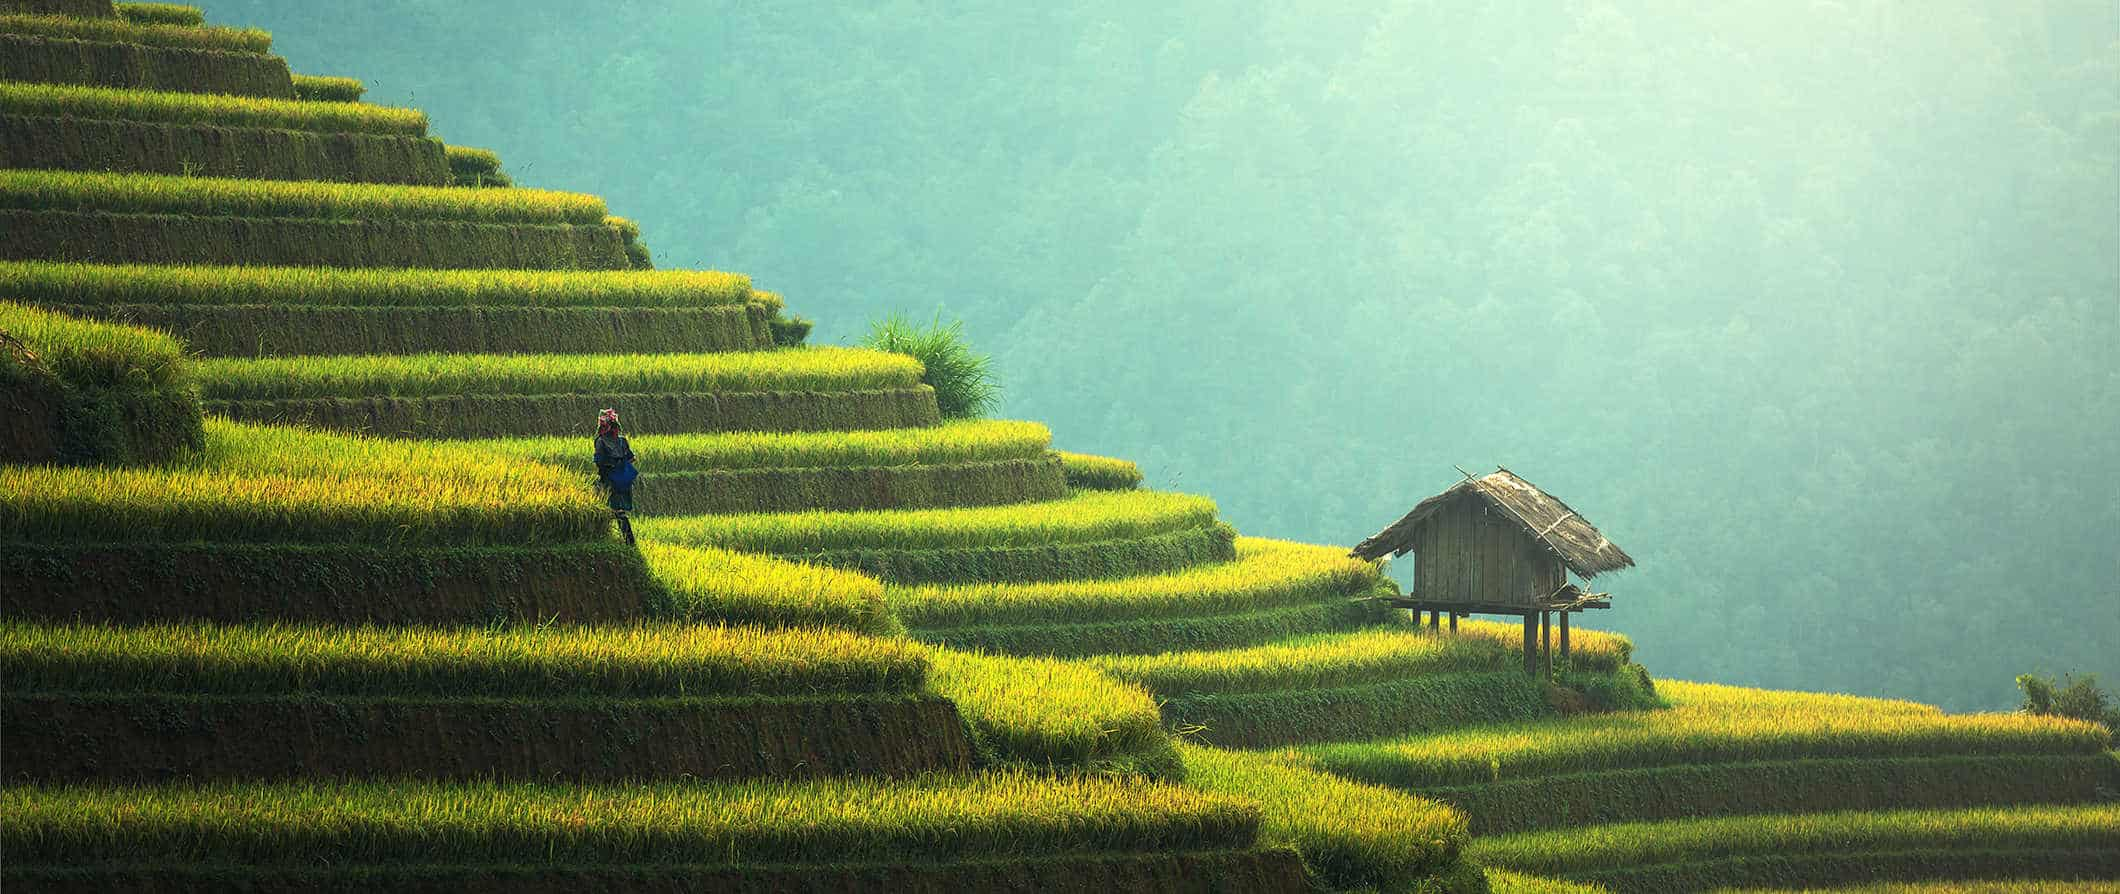 rice terraces in Southeast Asia